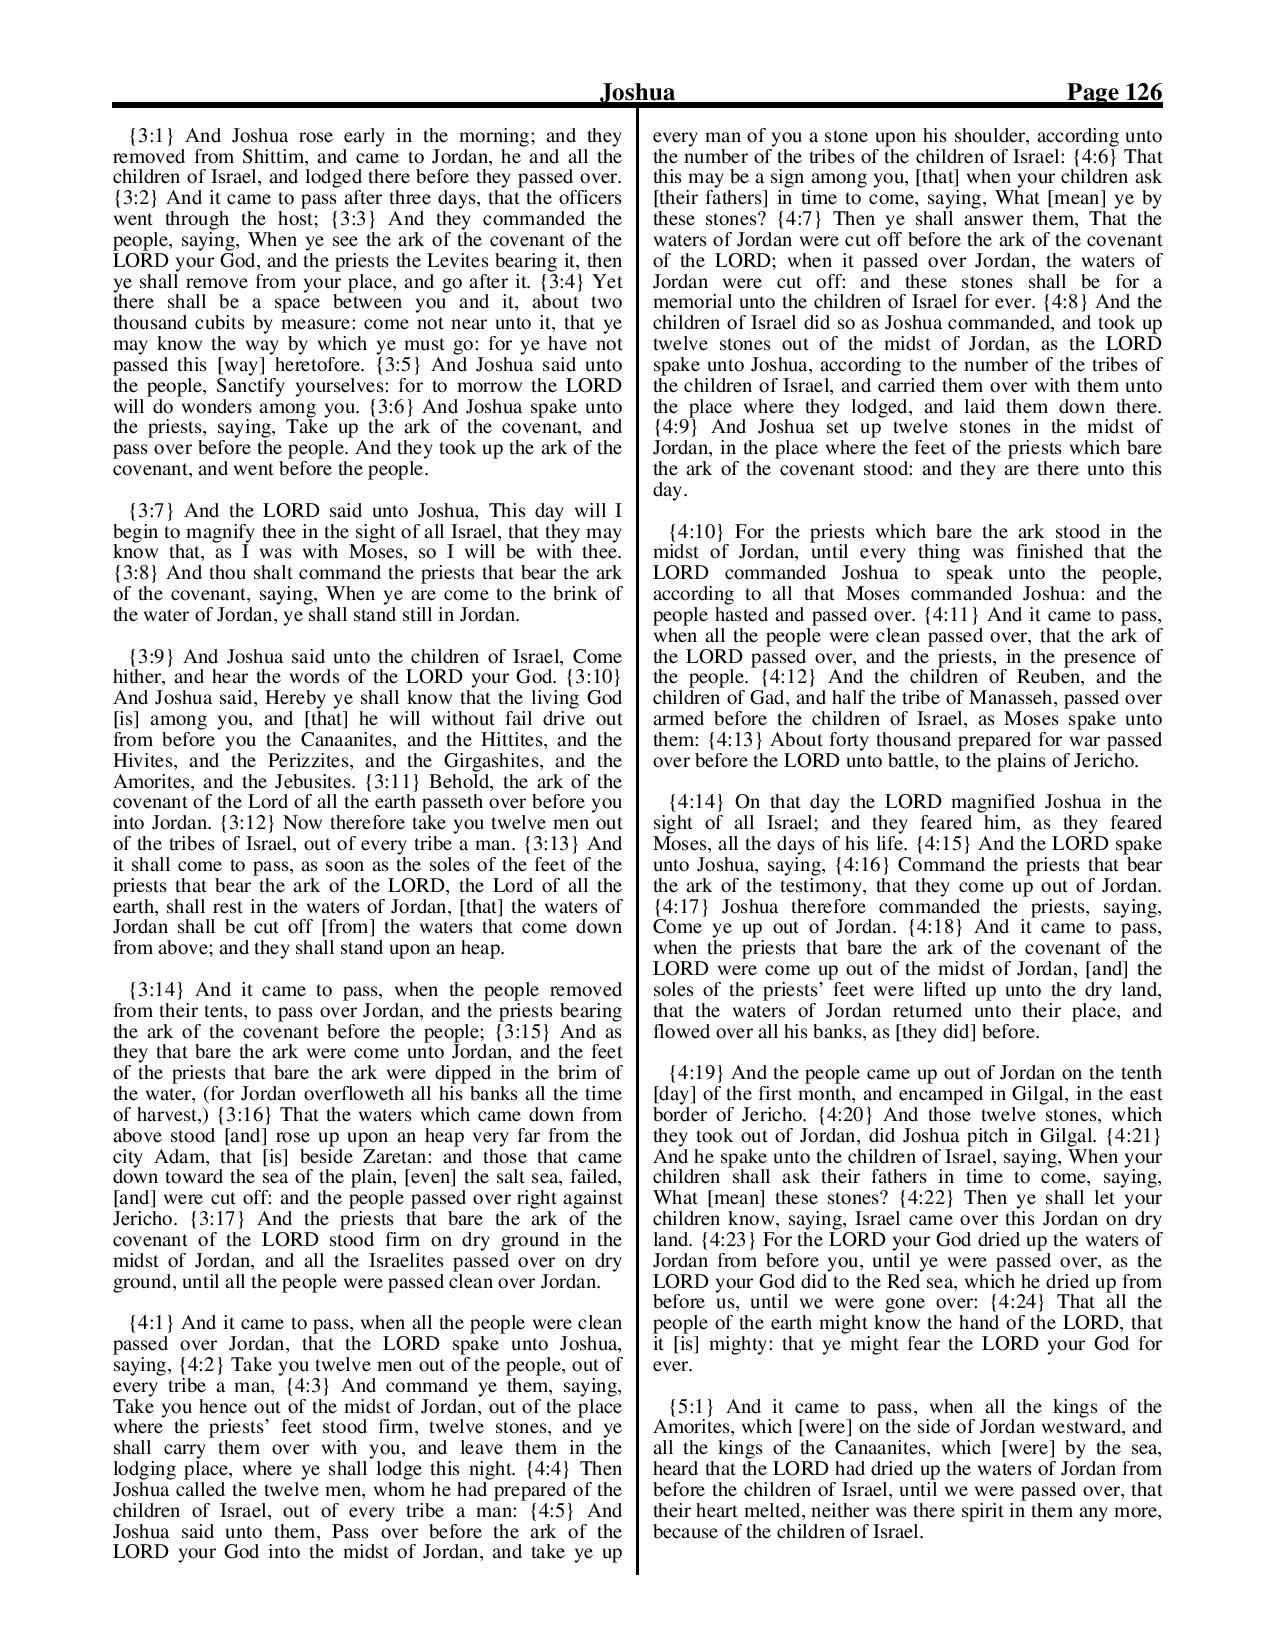 King-James-Bible-KJV-Bible-PDF-page-147